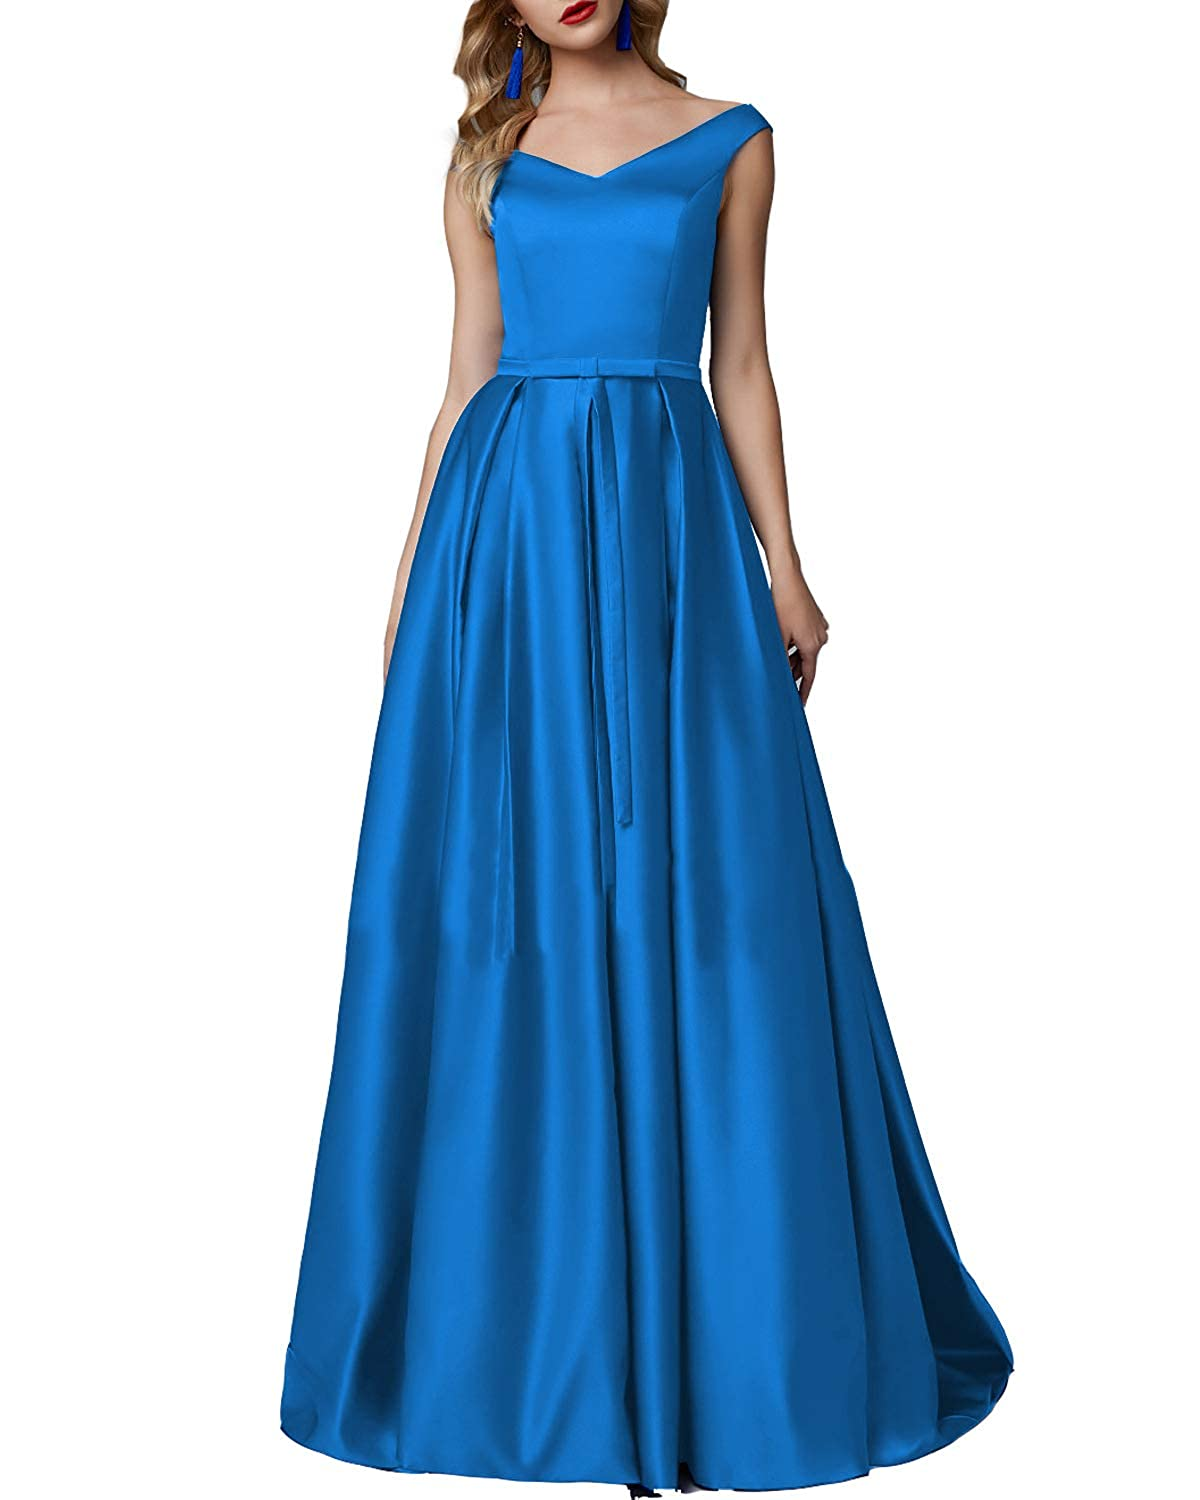 bluee CCBubble Long Satin Prom Dresses Aline V Neck Sleeveless Formal Evening Wedding Party Gowns